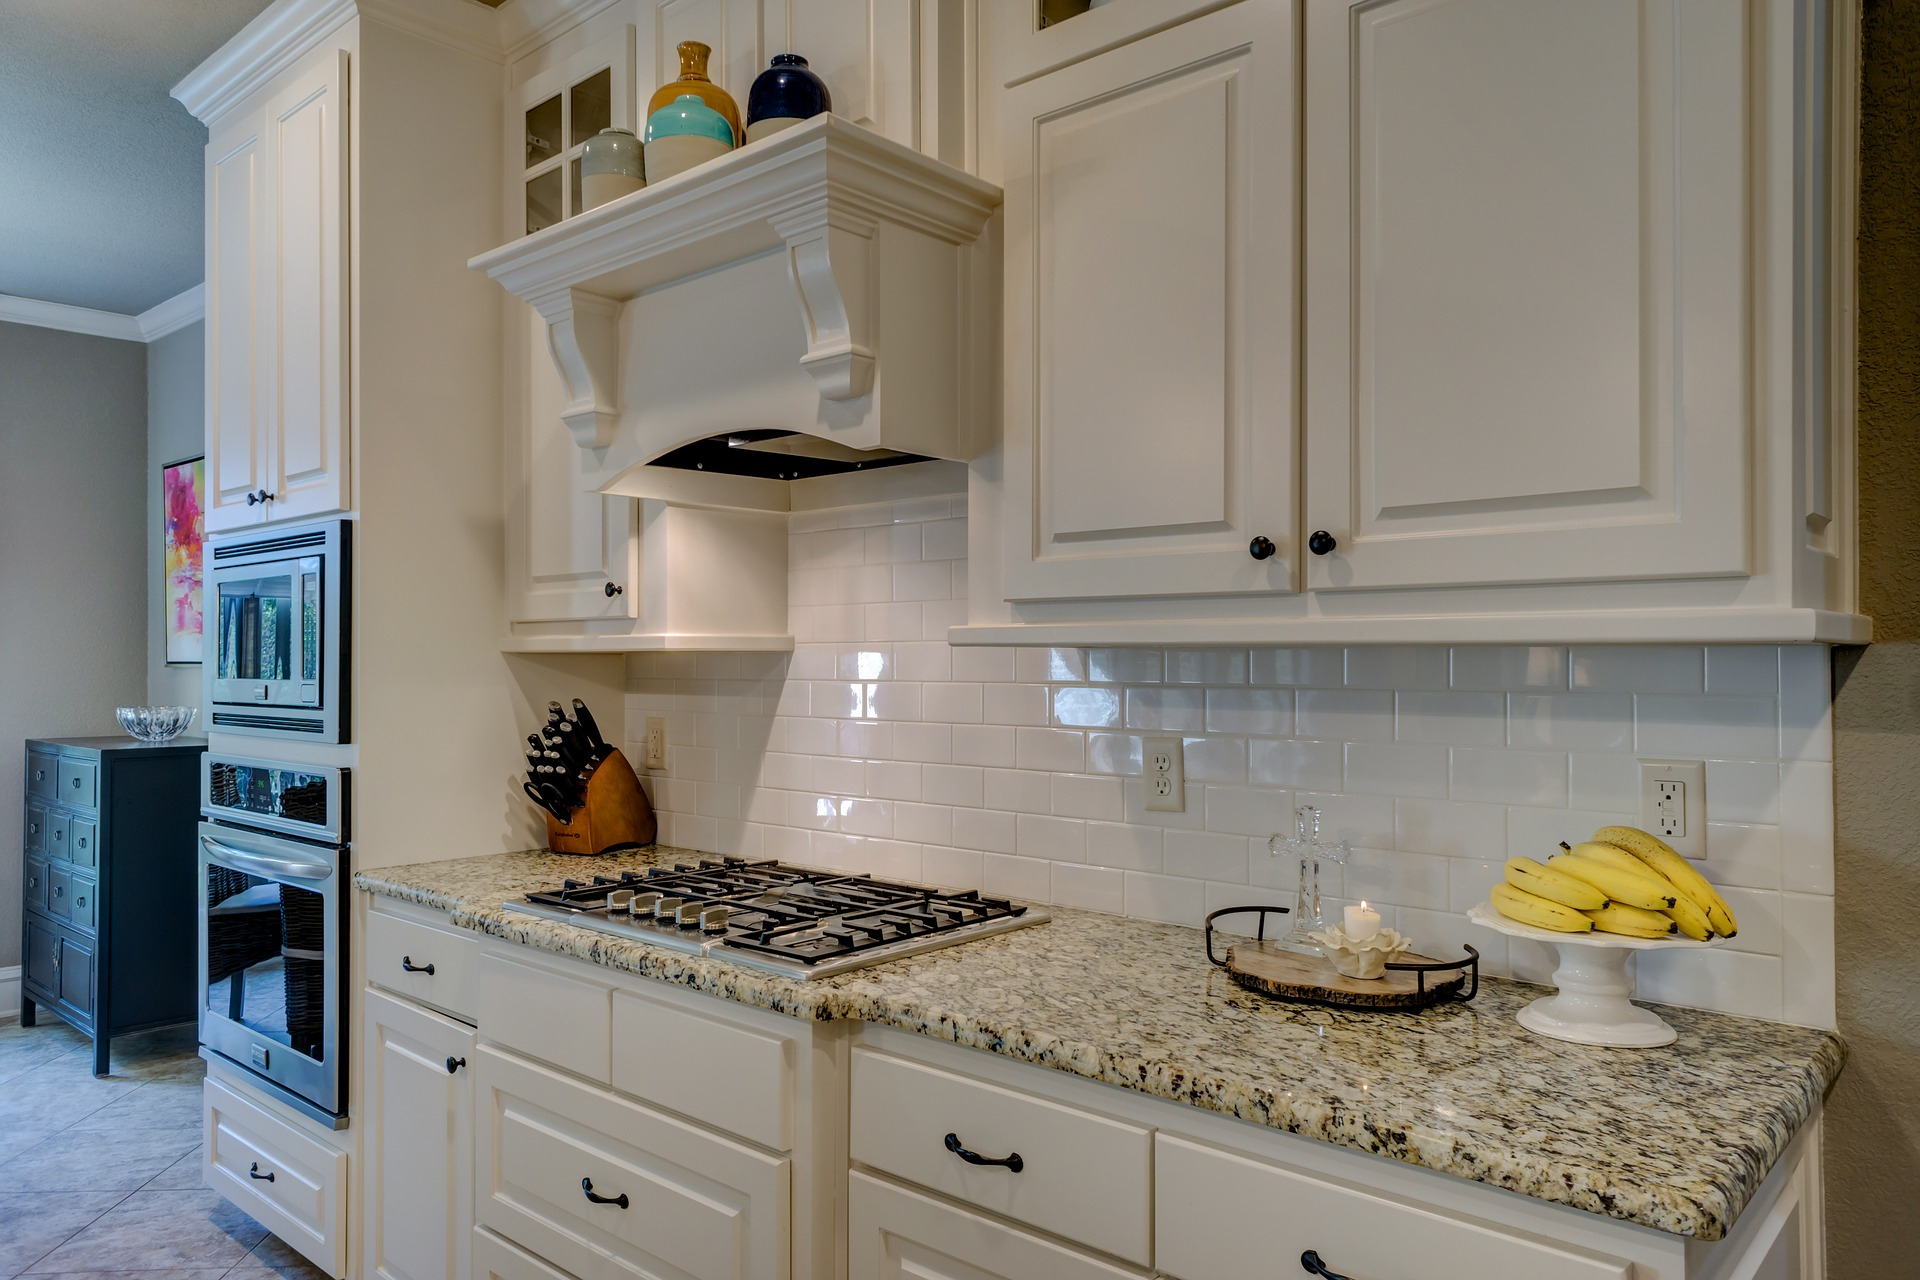 Quickest Way To Paint Kitchen Cabinets Blog 4 Ways To Refresh A Kitchen Without Hiring A